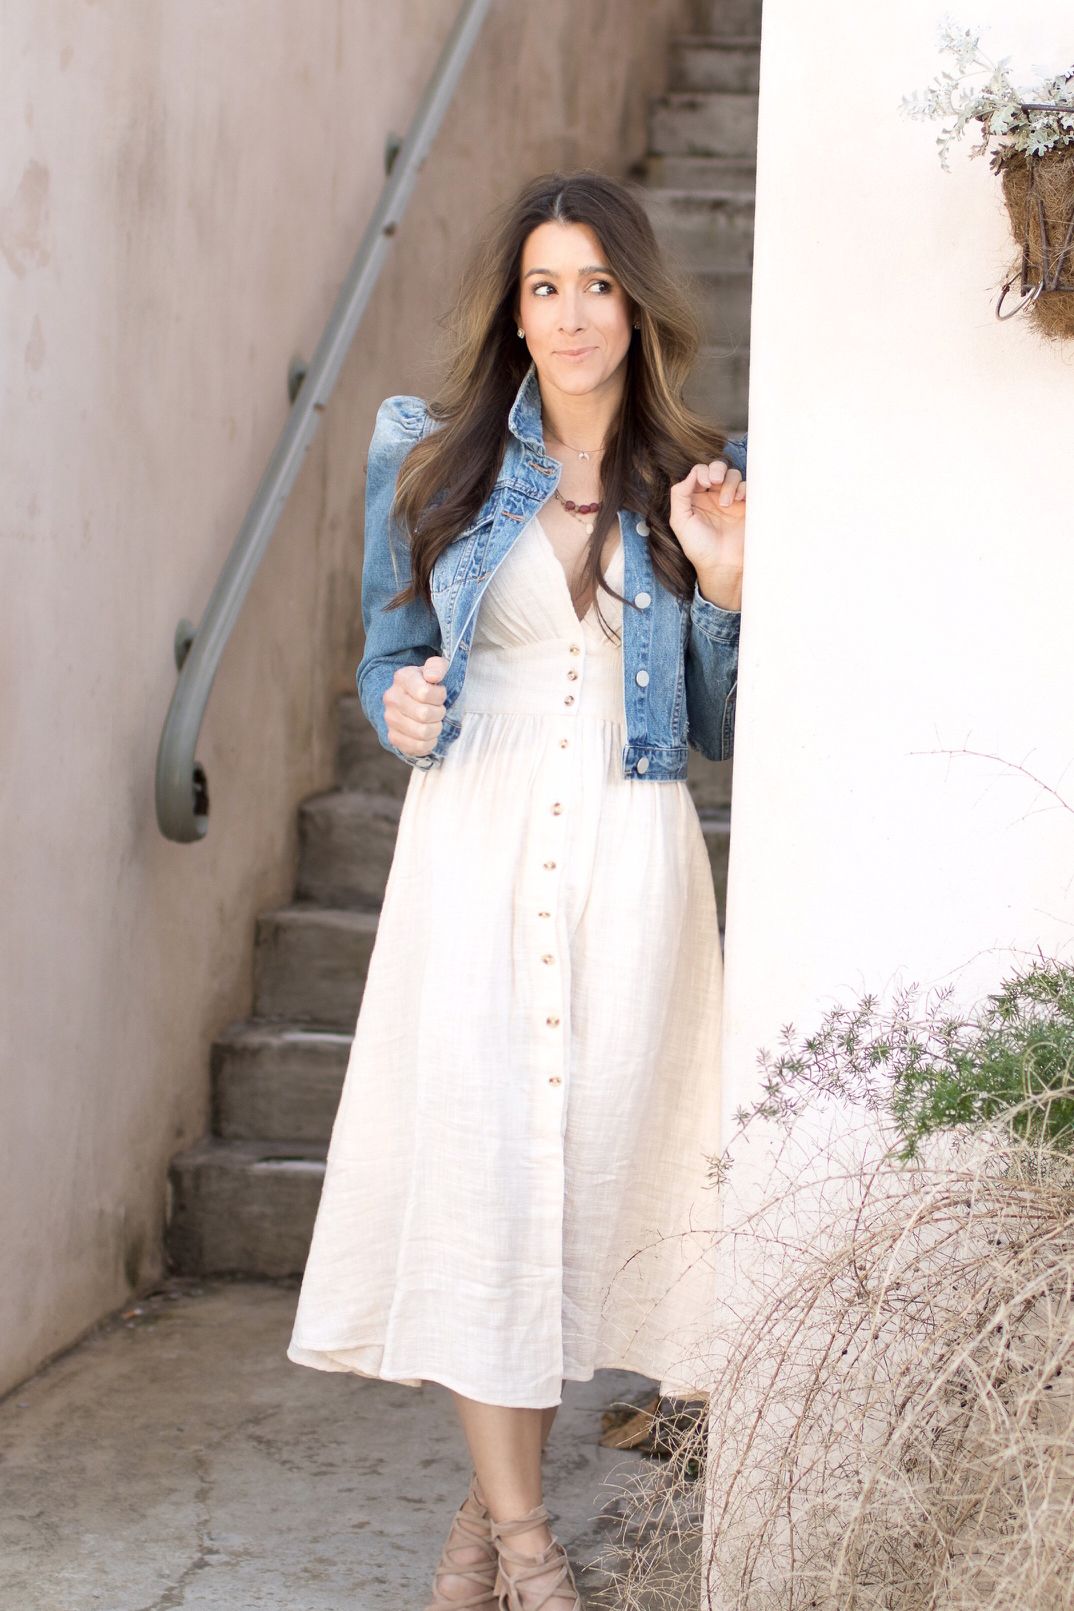 DRESS: FREE PEOPLE  HERE  AND  HERE  | DENIM JACKET: DILLARDS BRAND CYNTHIA AND VIOLET  HERE  AND SIMILAR  HERE|  SHOES: SAM EDELMAN SIMILAR  HERE  AND  HERE  |NECKLACE: DIANA WARNER (SIMILAR  HERE )| BRACELET: CARTIER LOVE BRACELET ( HERE ) | SUNGLASSES:  JIMMY CHOO